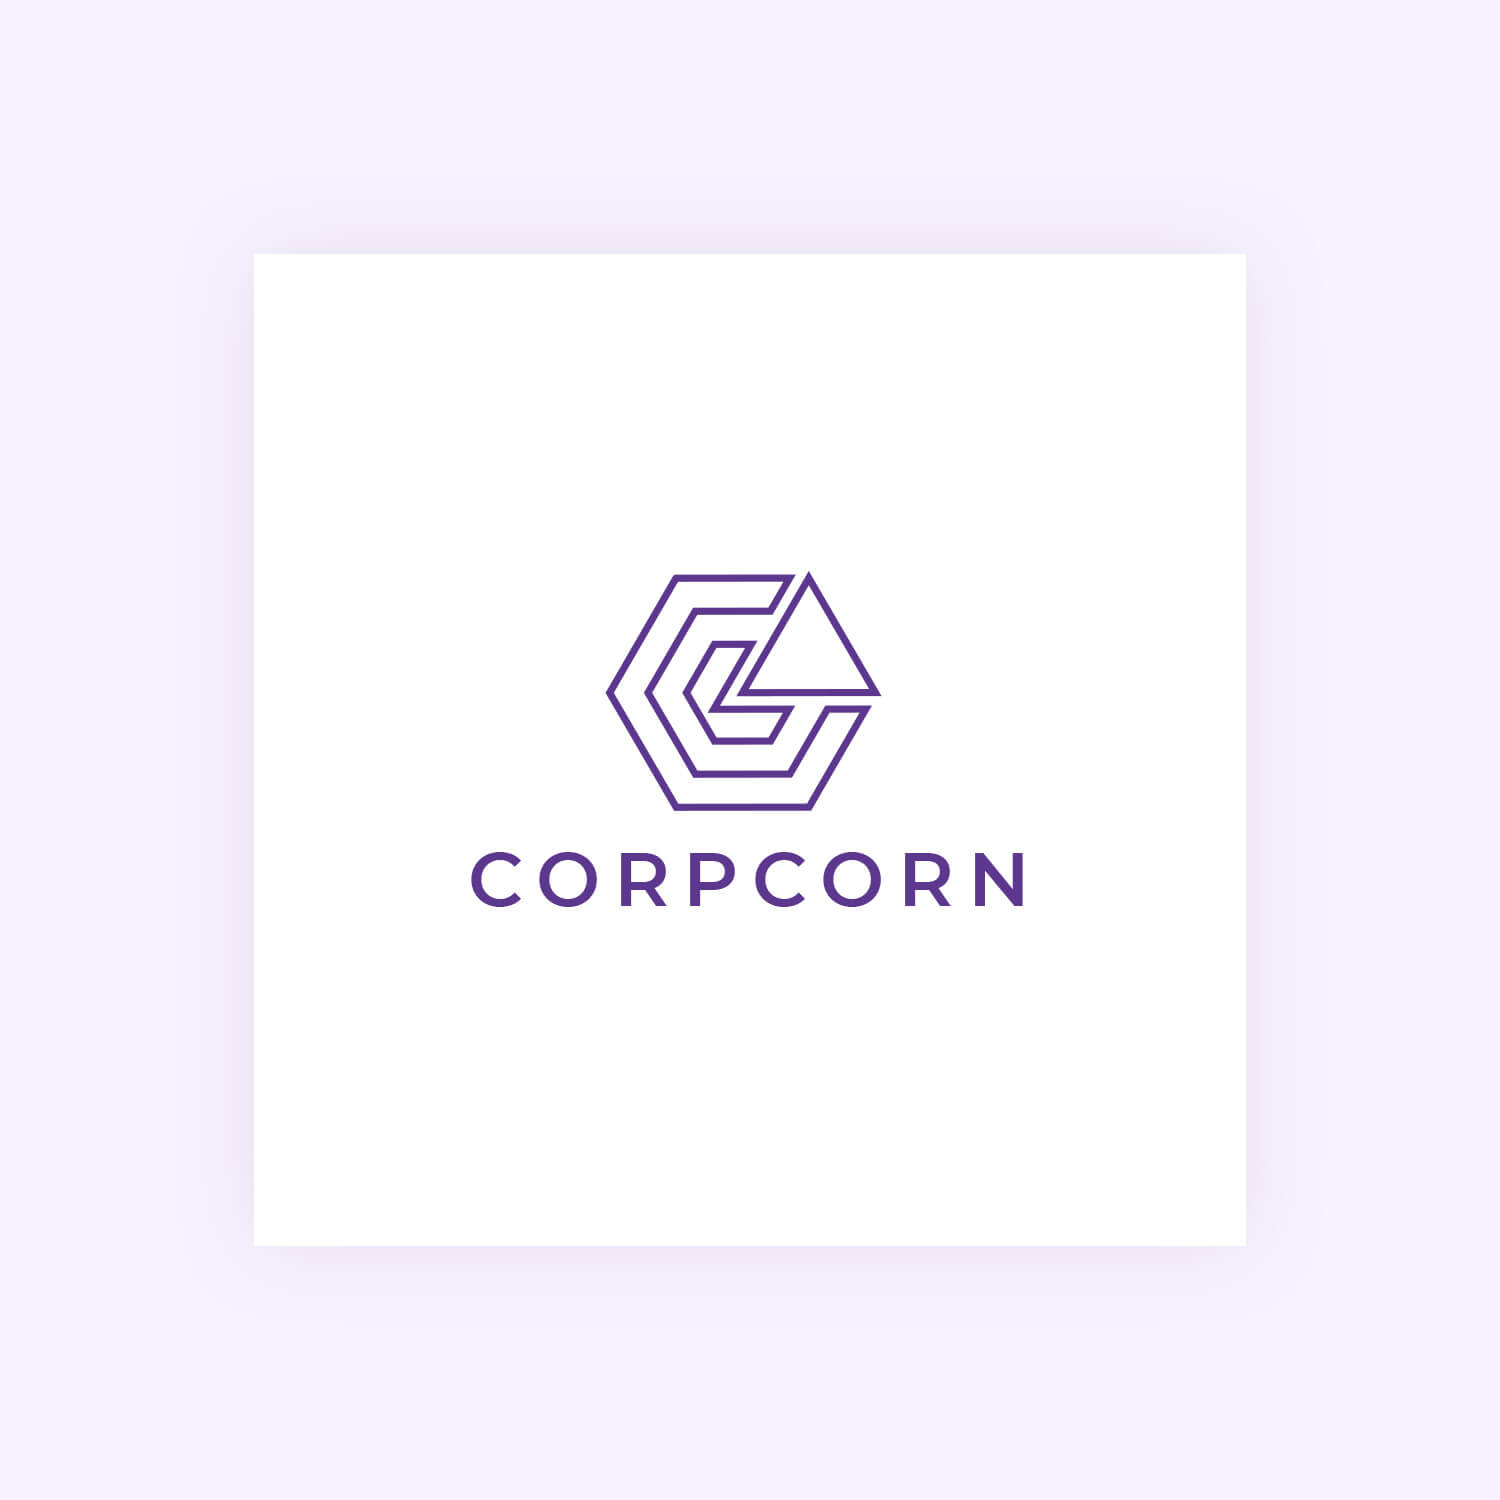 Corp Corn – Logo design